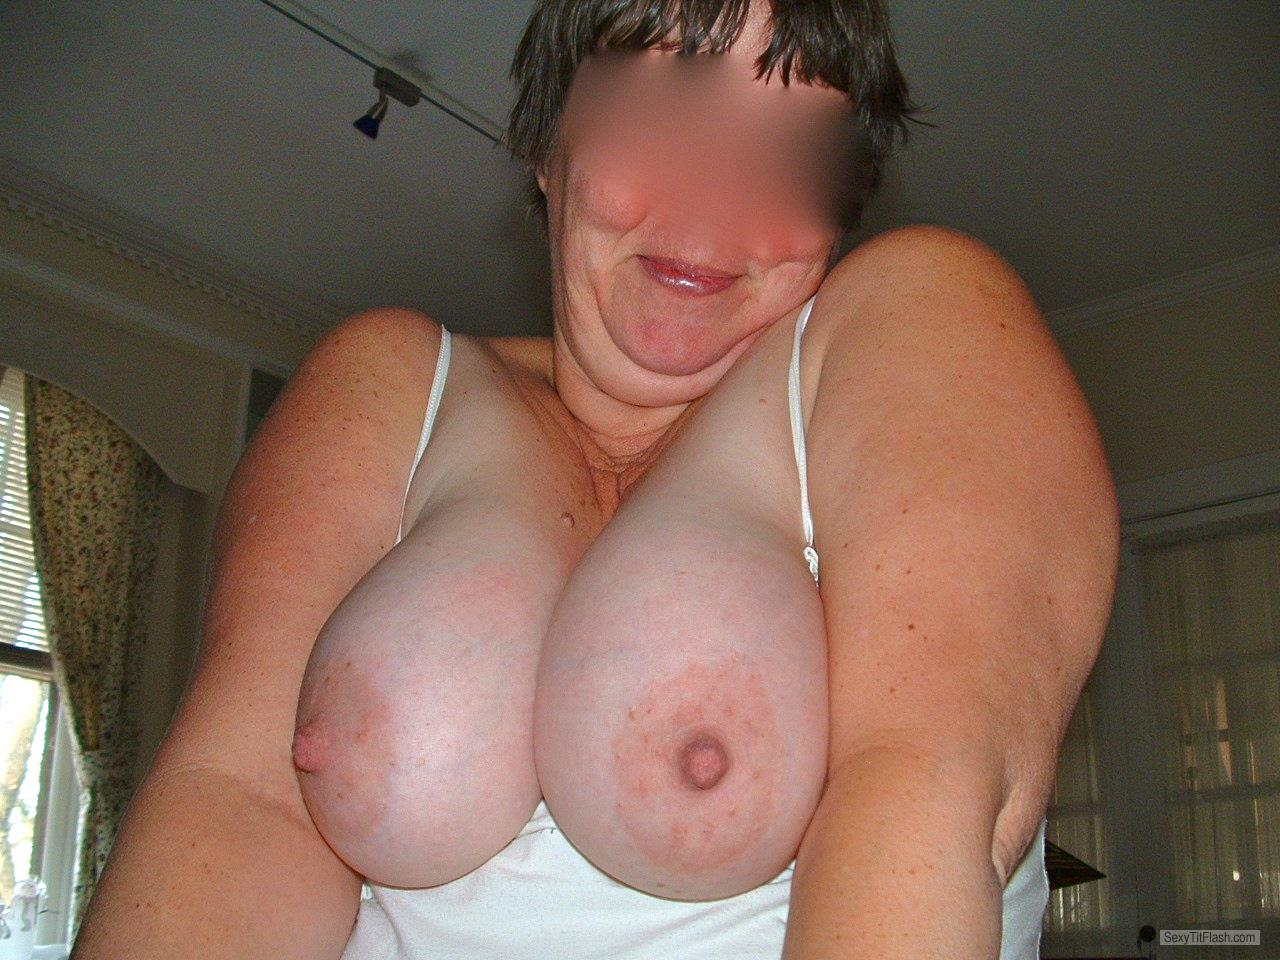 Very big Tits Of My Room Mate Naddy